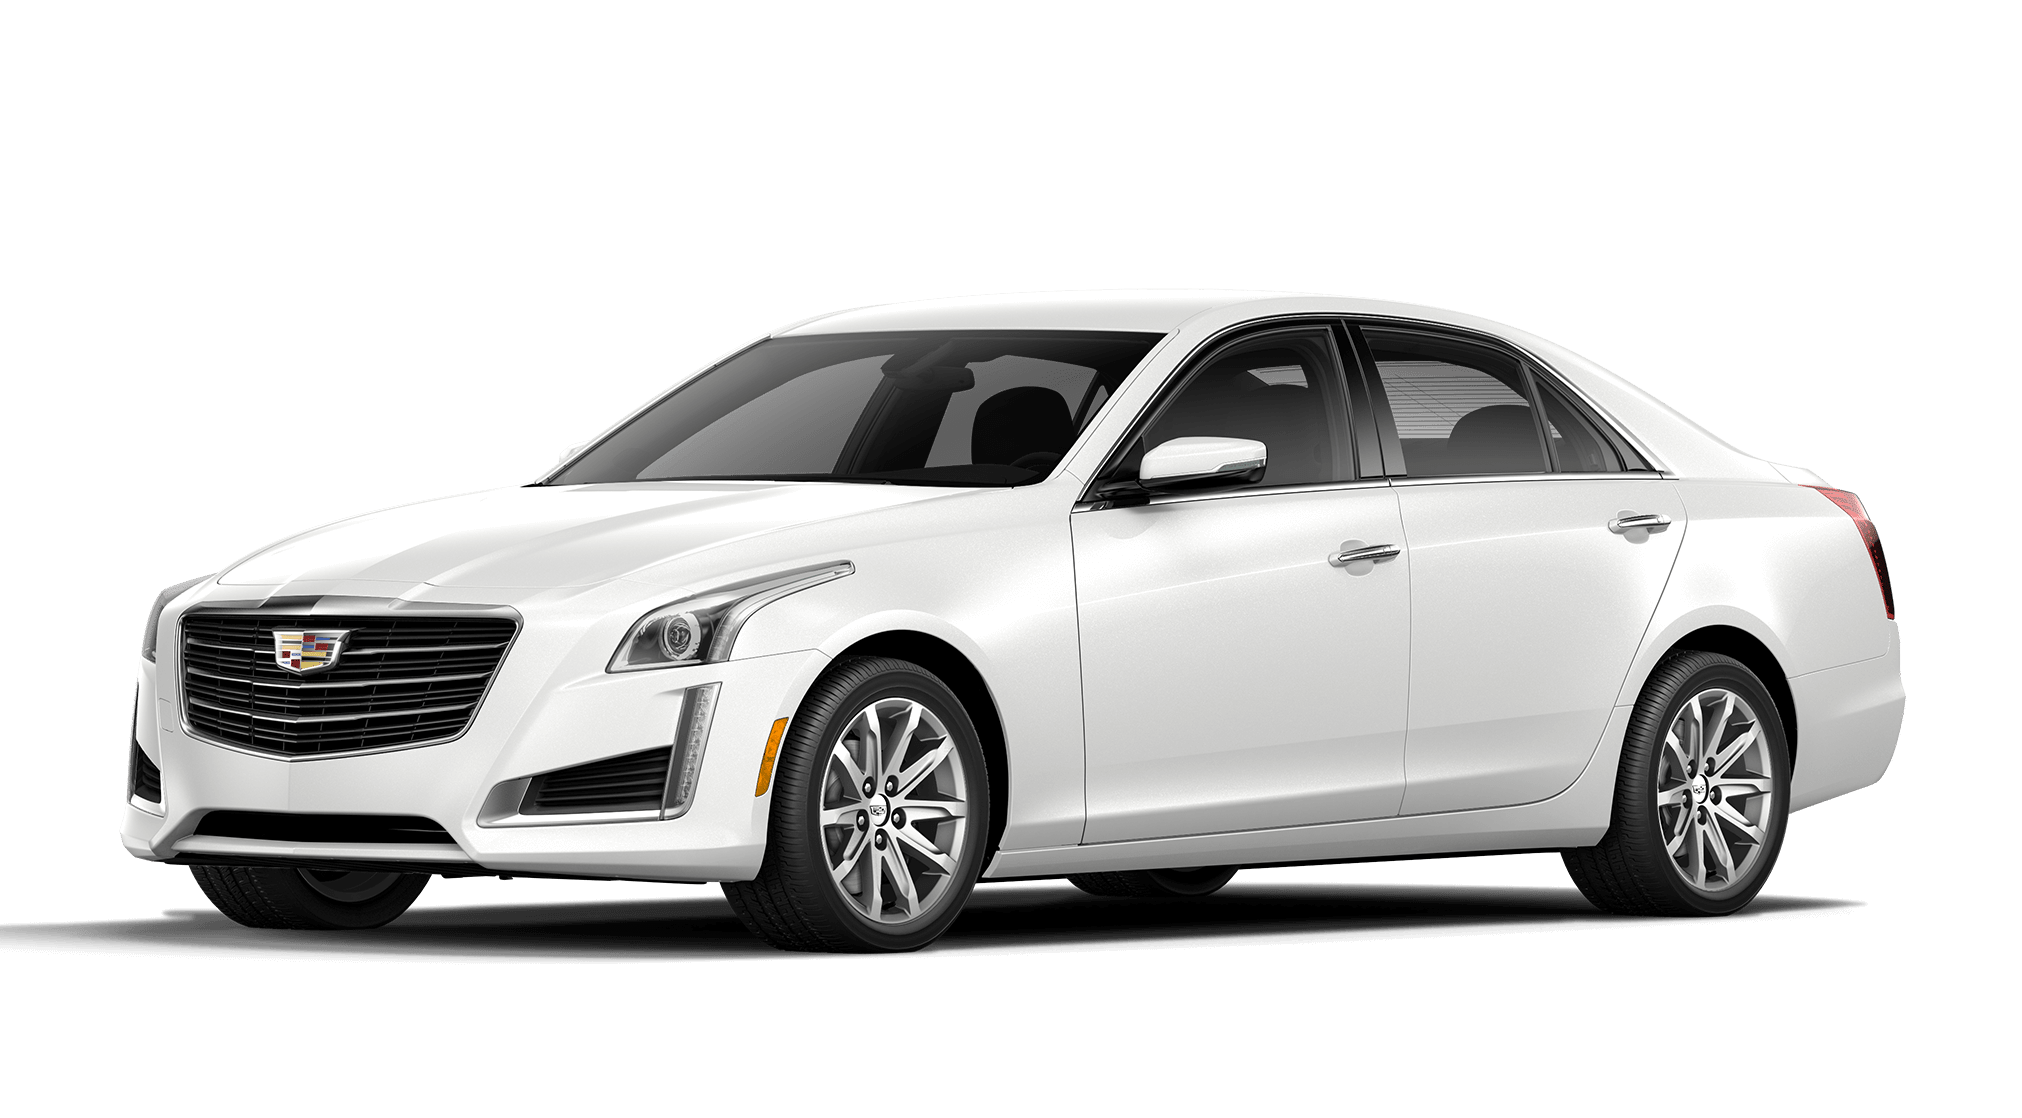 Cystral White Tricoat Cadillac CTS